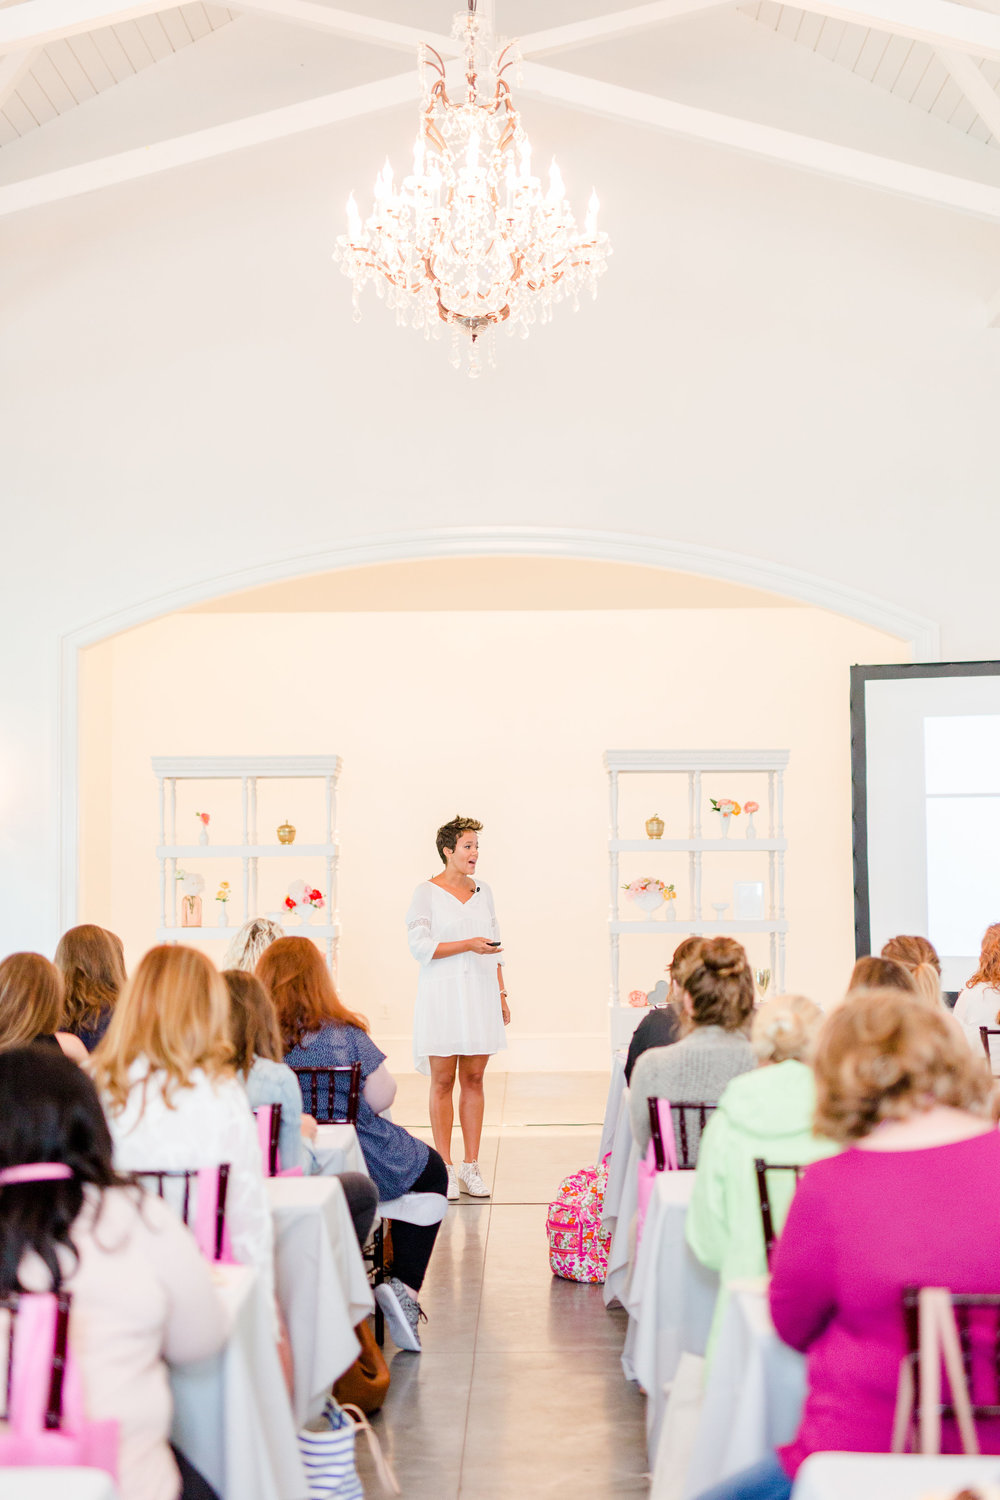 Merrimon-Wynne-Creative-At-Heart-Conference-Raleigh-North-Carolina-Holly-Felts-Photography-93.jpg